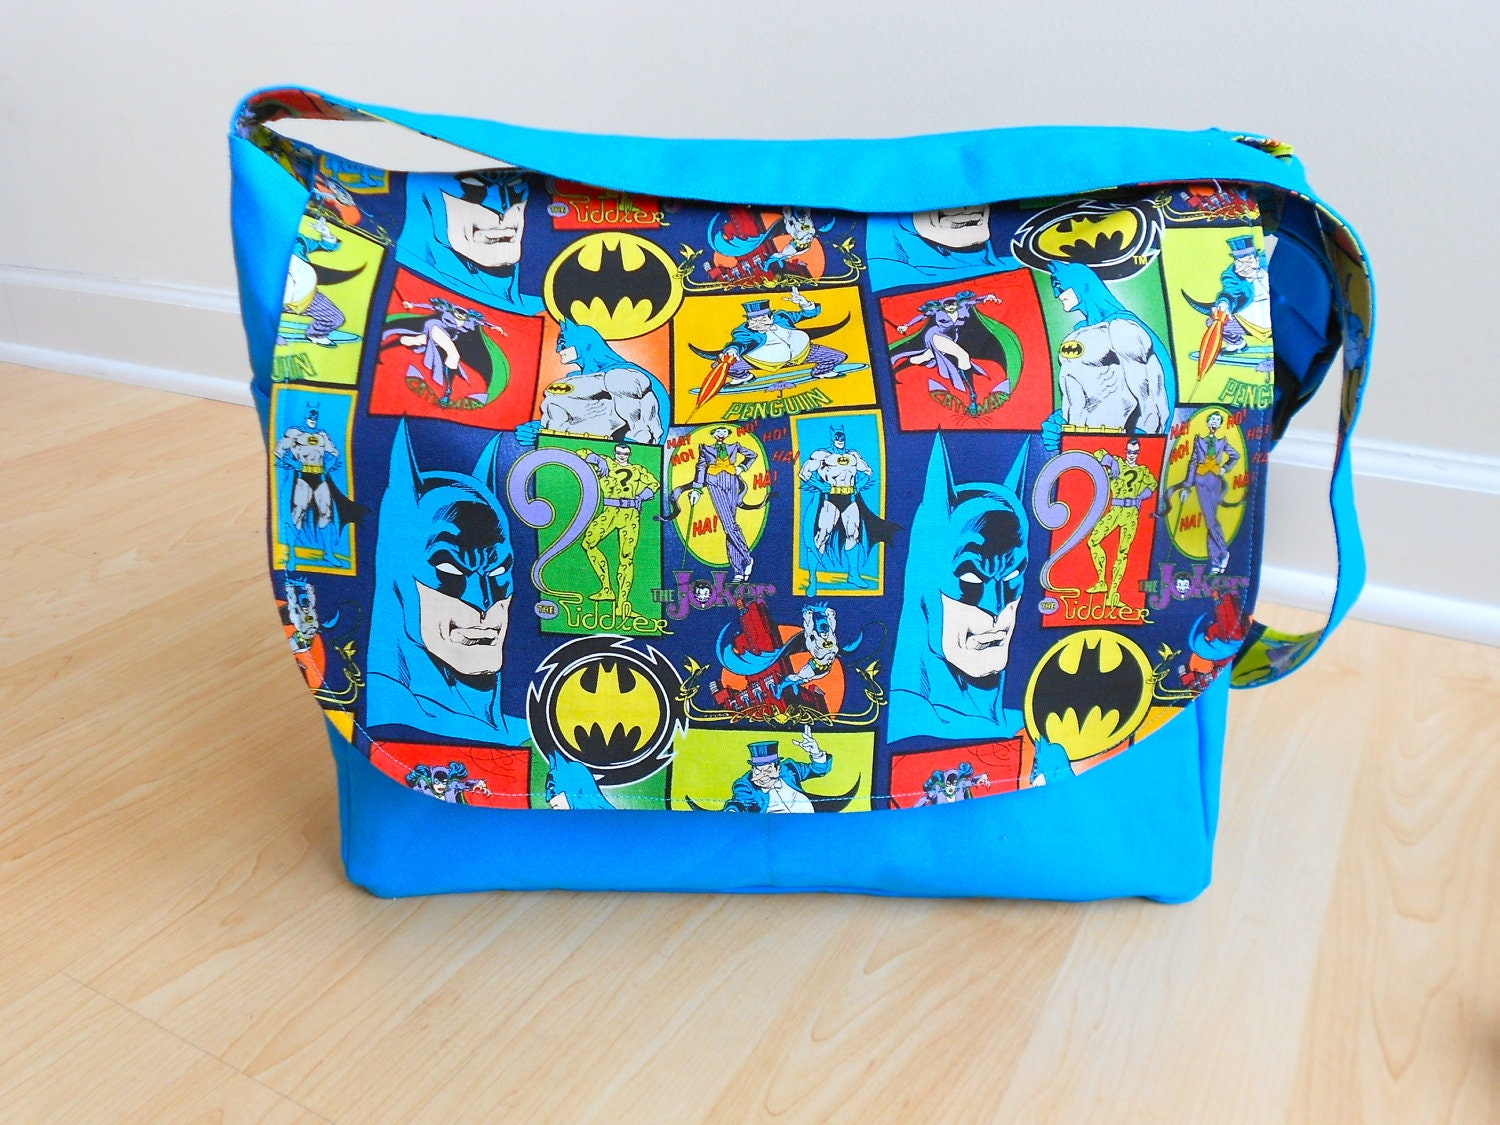 Batman Messenger/Diaper Bag - Blue with Joker, Catwoman, Penguin, Riddler on Etsy, $ Find this Pin and more on Batman diaper bag by Sera Sprague. Batman Messenger/Diaper Bag - Blue with Joker, Catwoman, Penguin, Riddler.